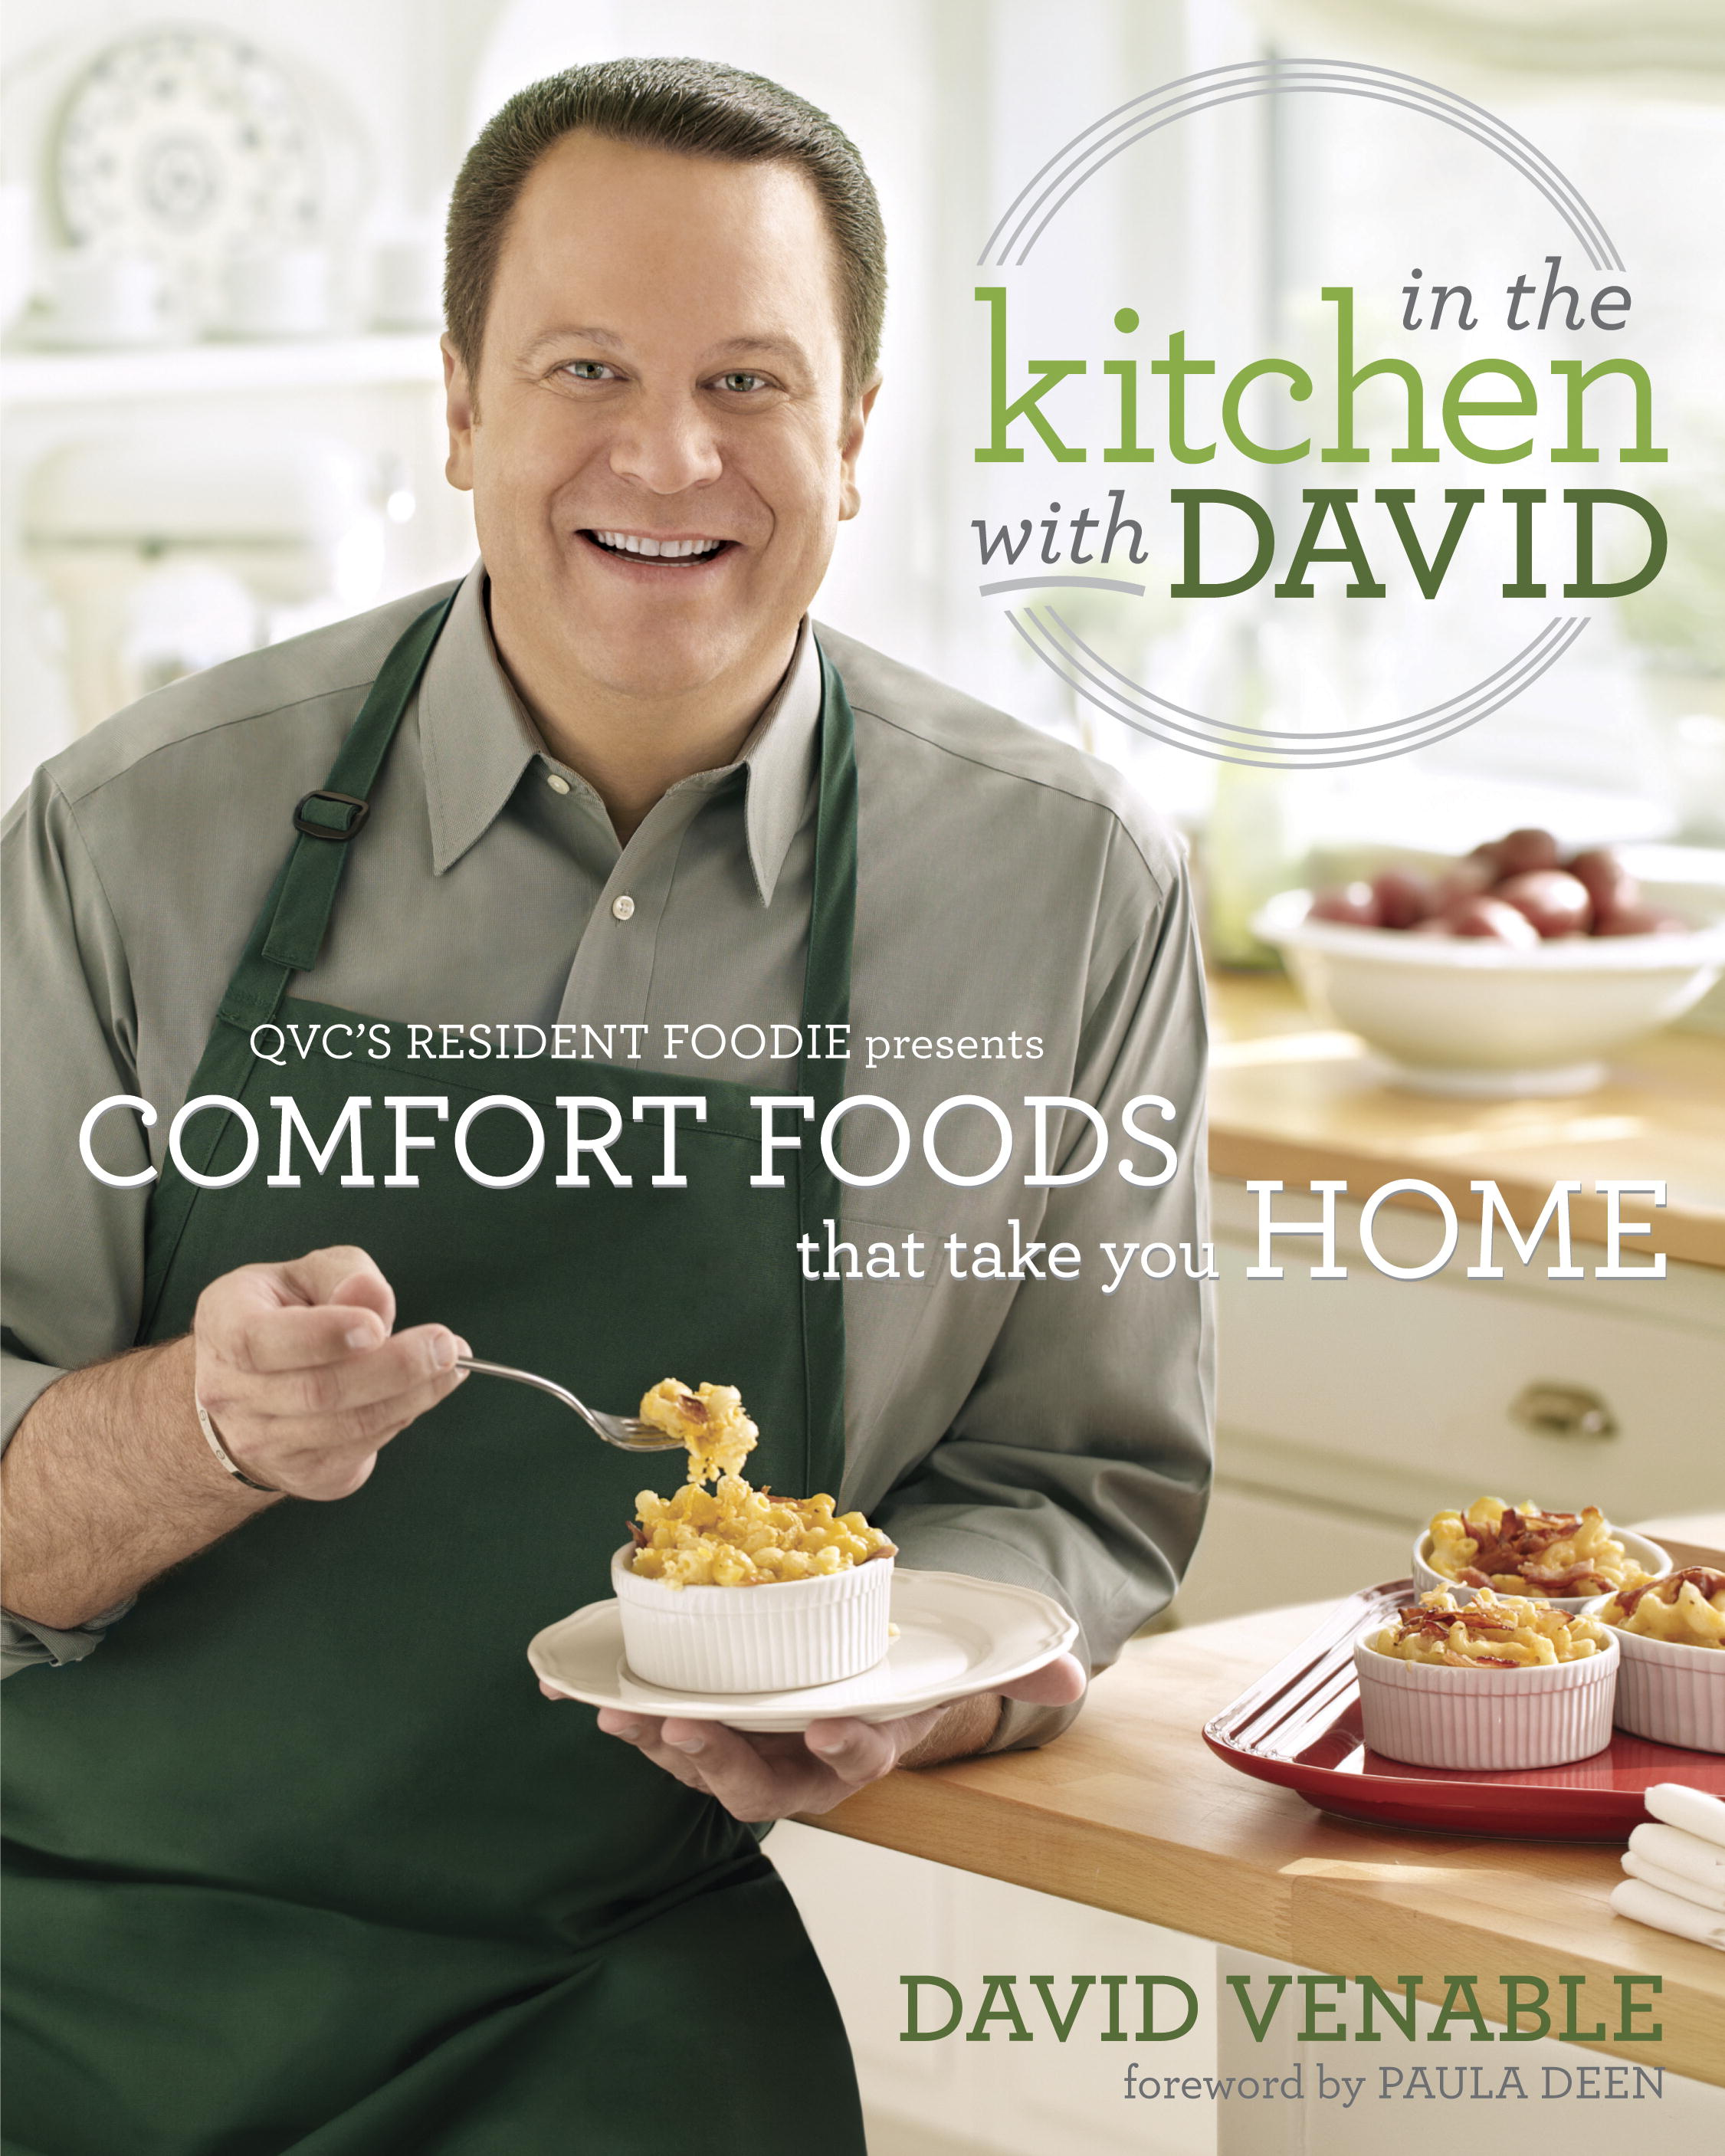 Qvc In The Kitchen With David Recipes